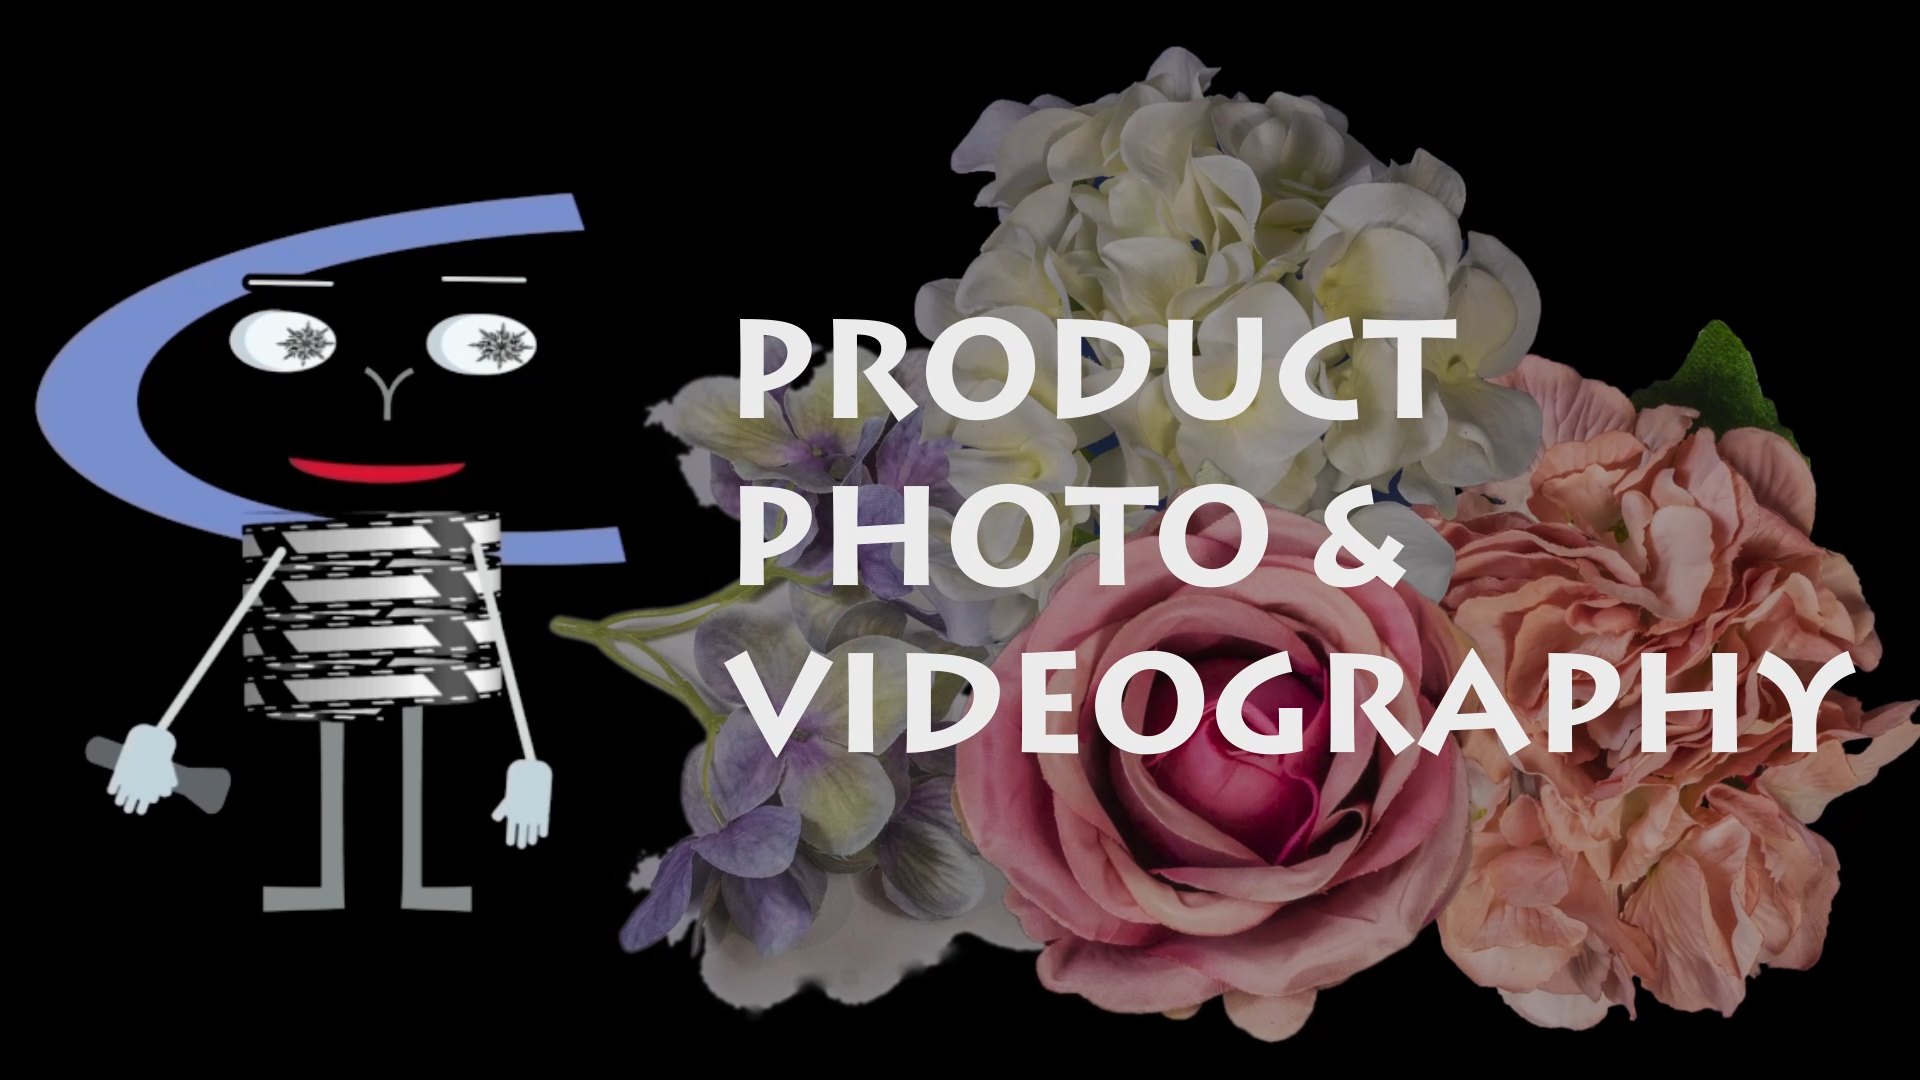 Crystalfilm Product Photo and Videography